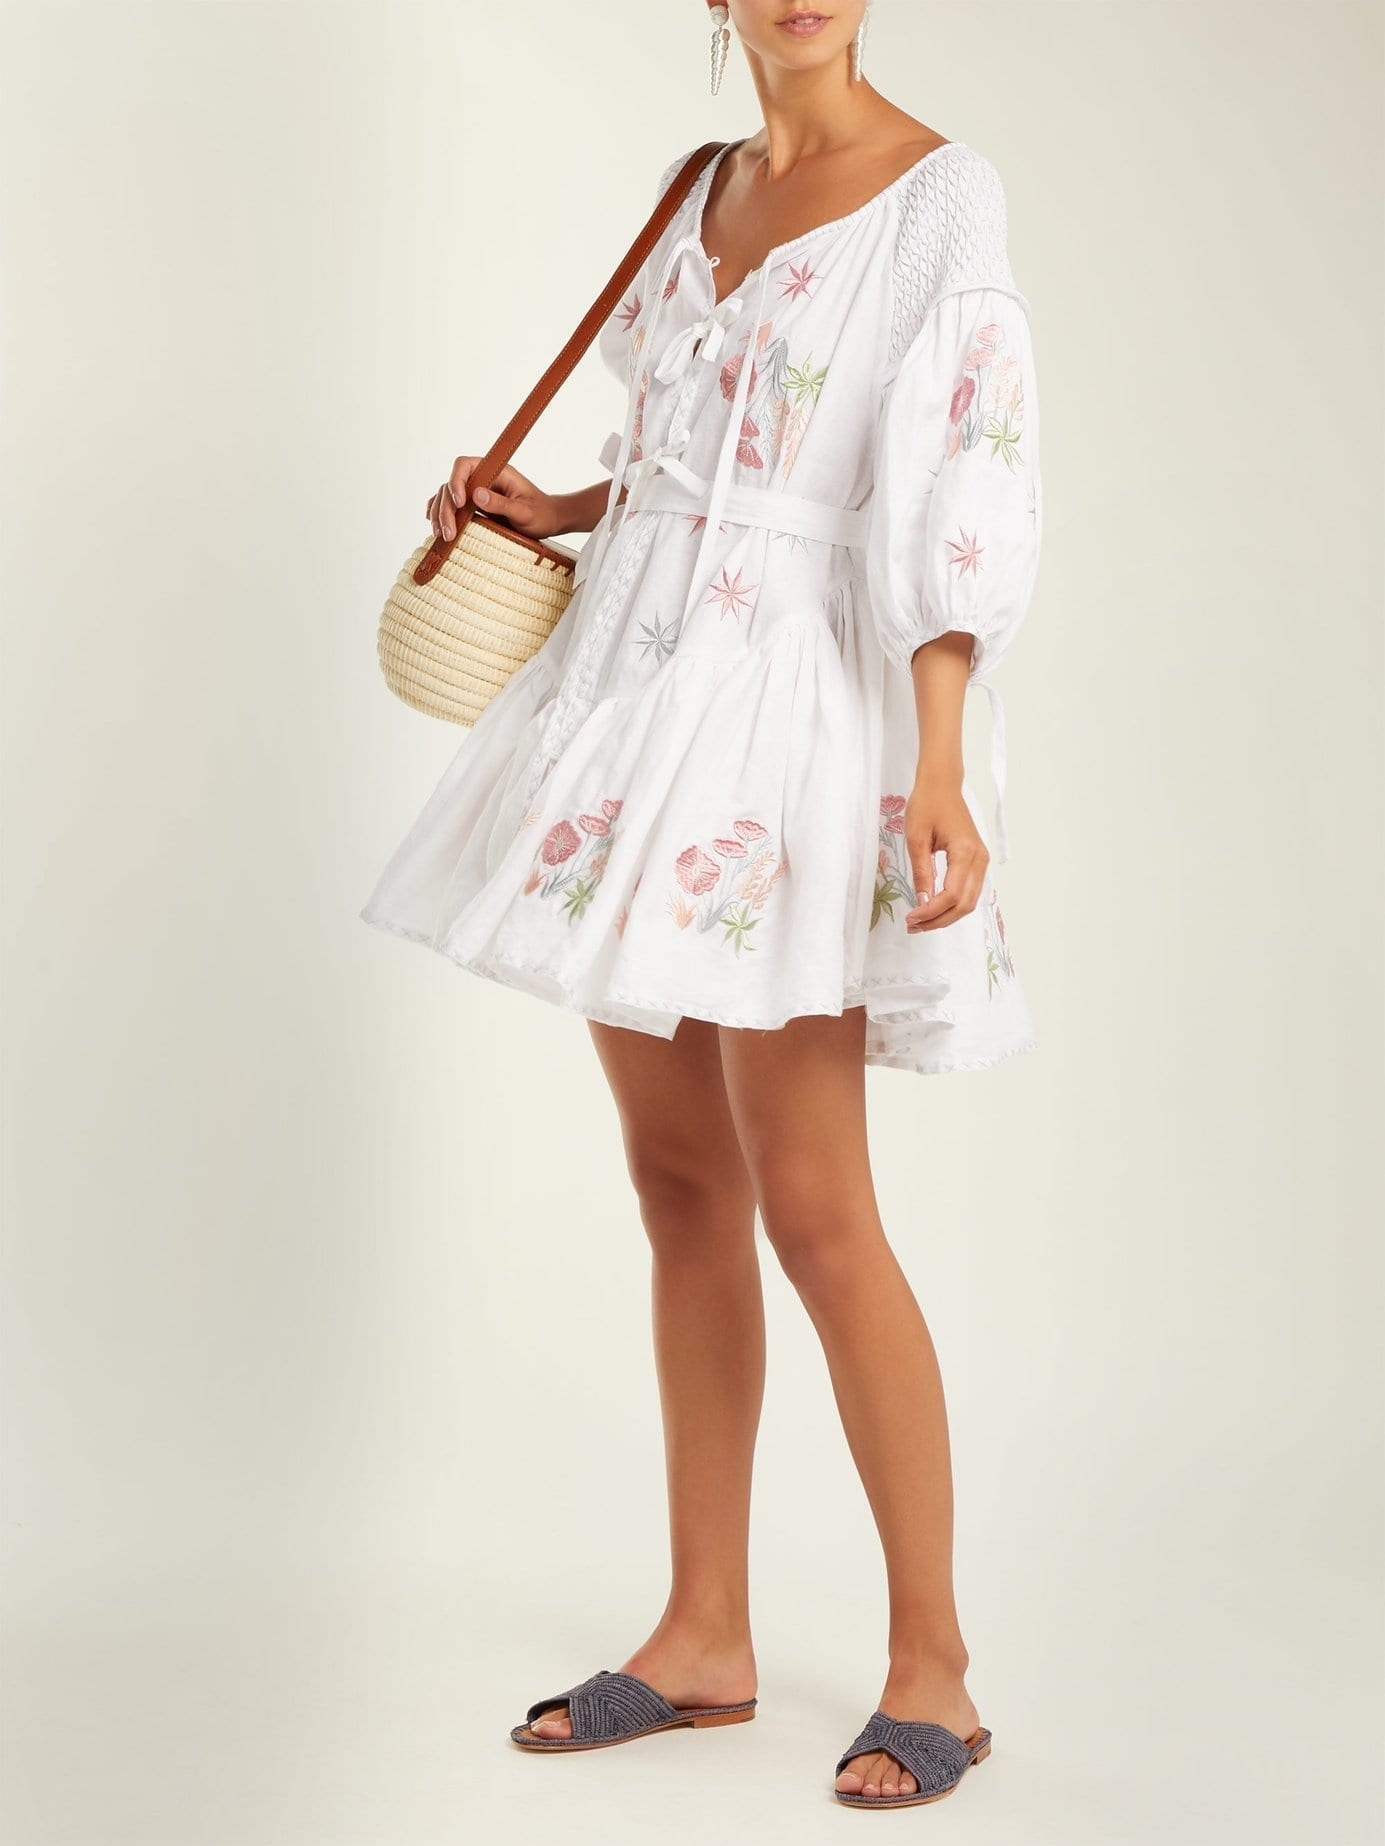 INNIKA CHOO Balloon-sleeve Linen Peasant White Dress